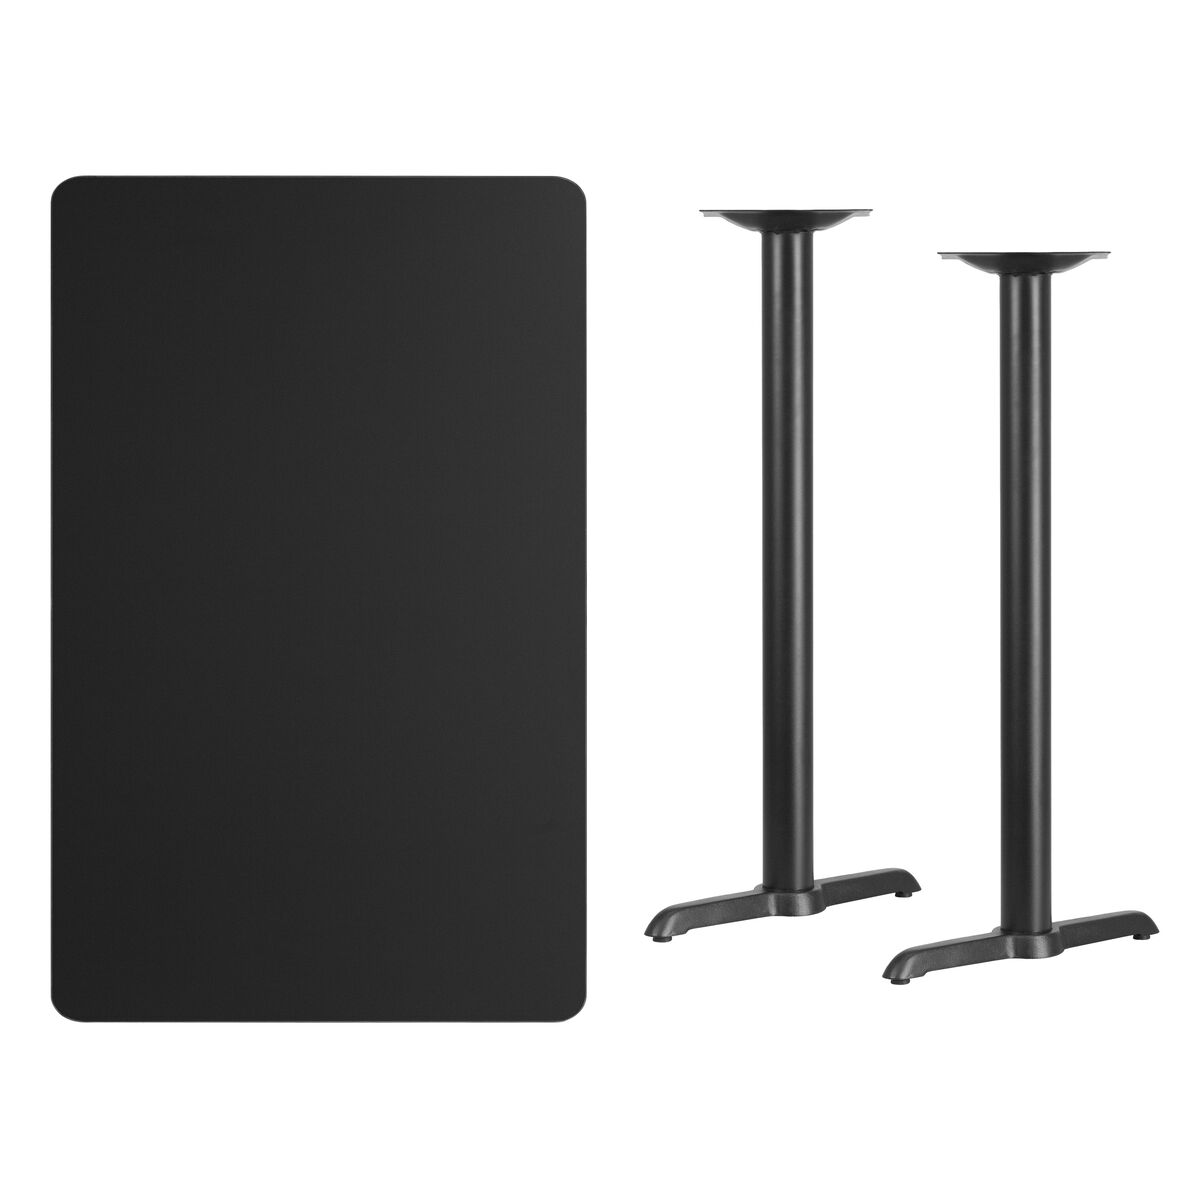 Jackson Rectangular Table With Metal Base: 30'' X 48'' Rectangular Black Laminate Table Top With 5